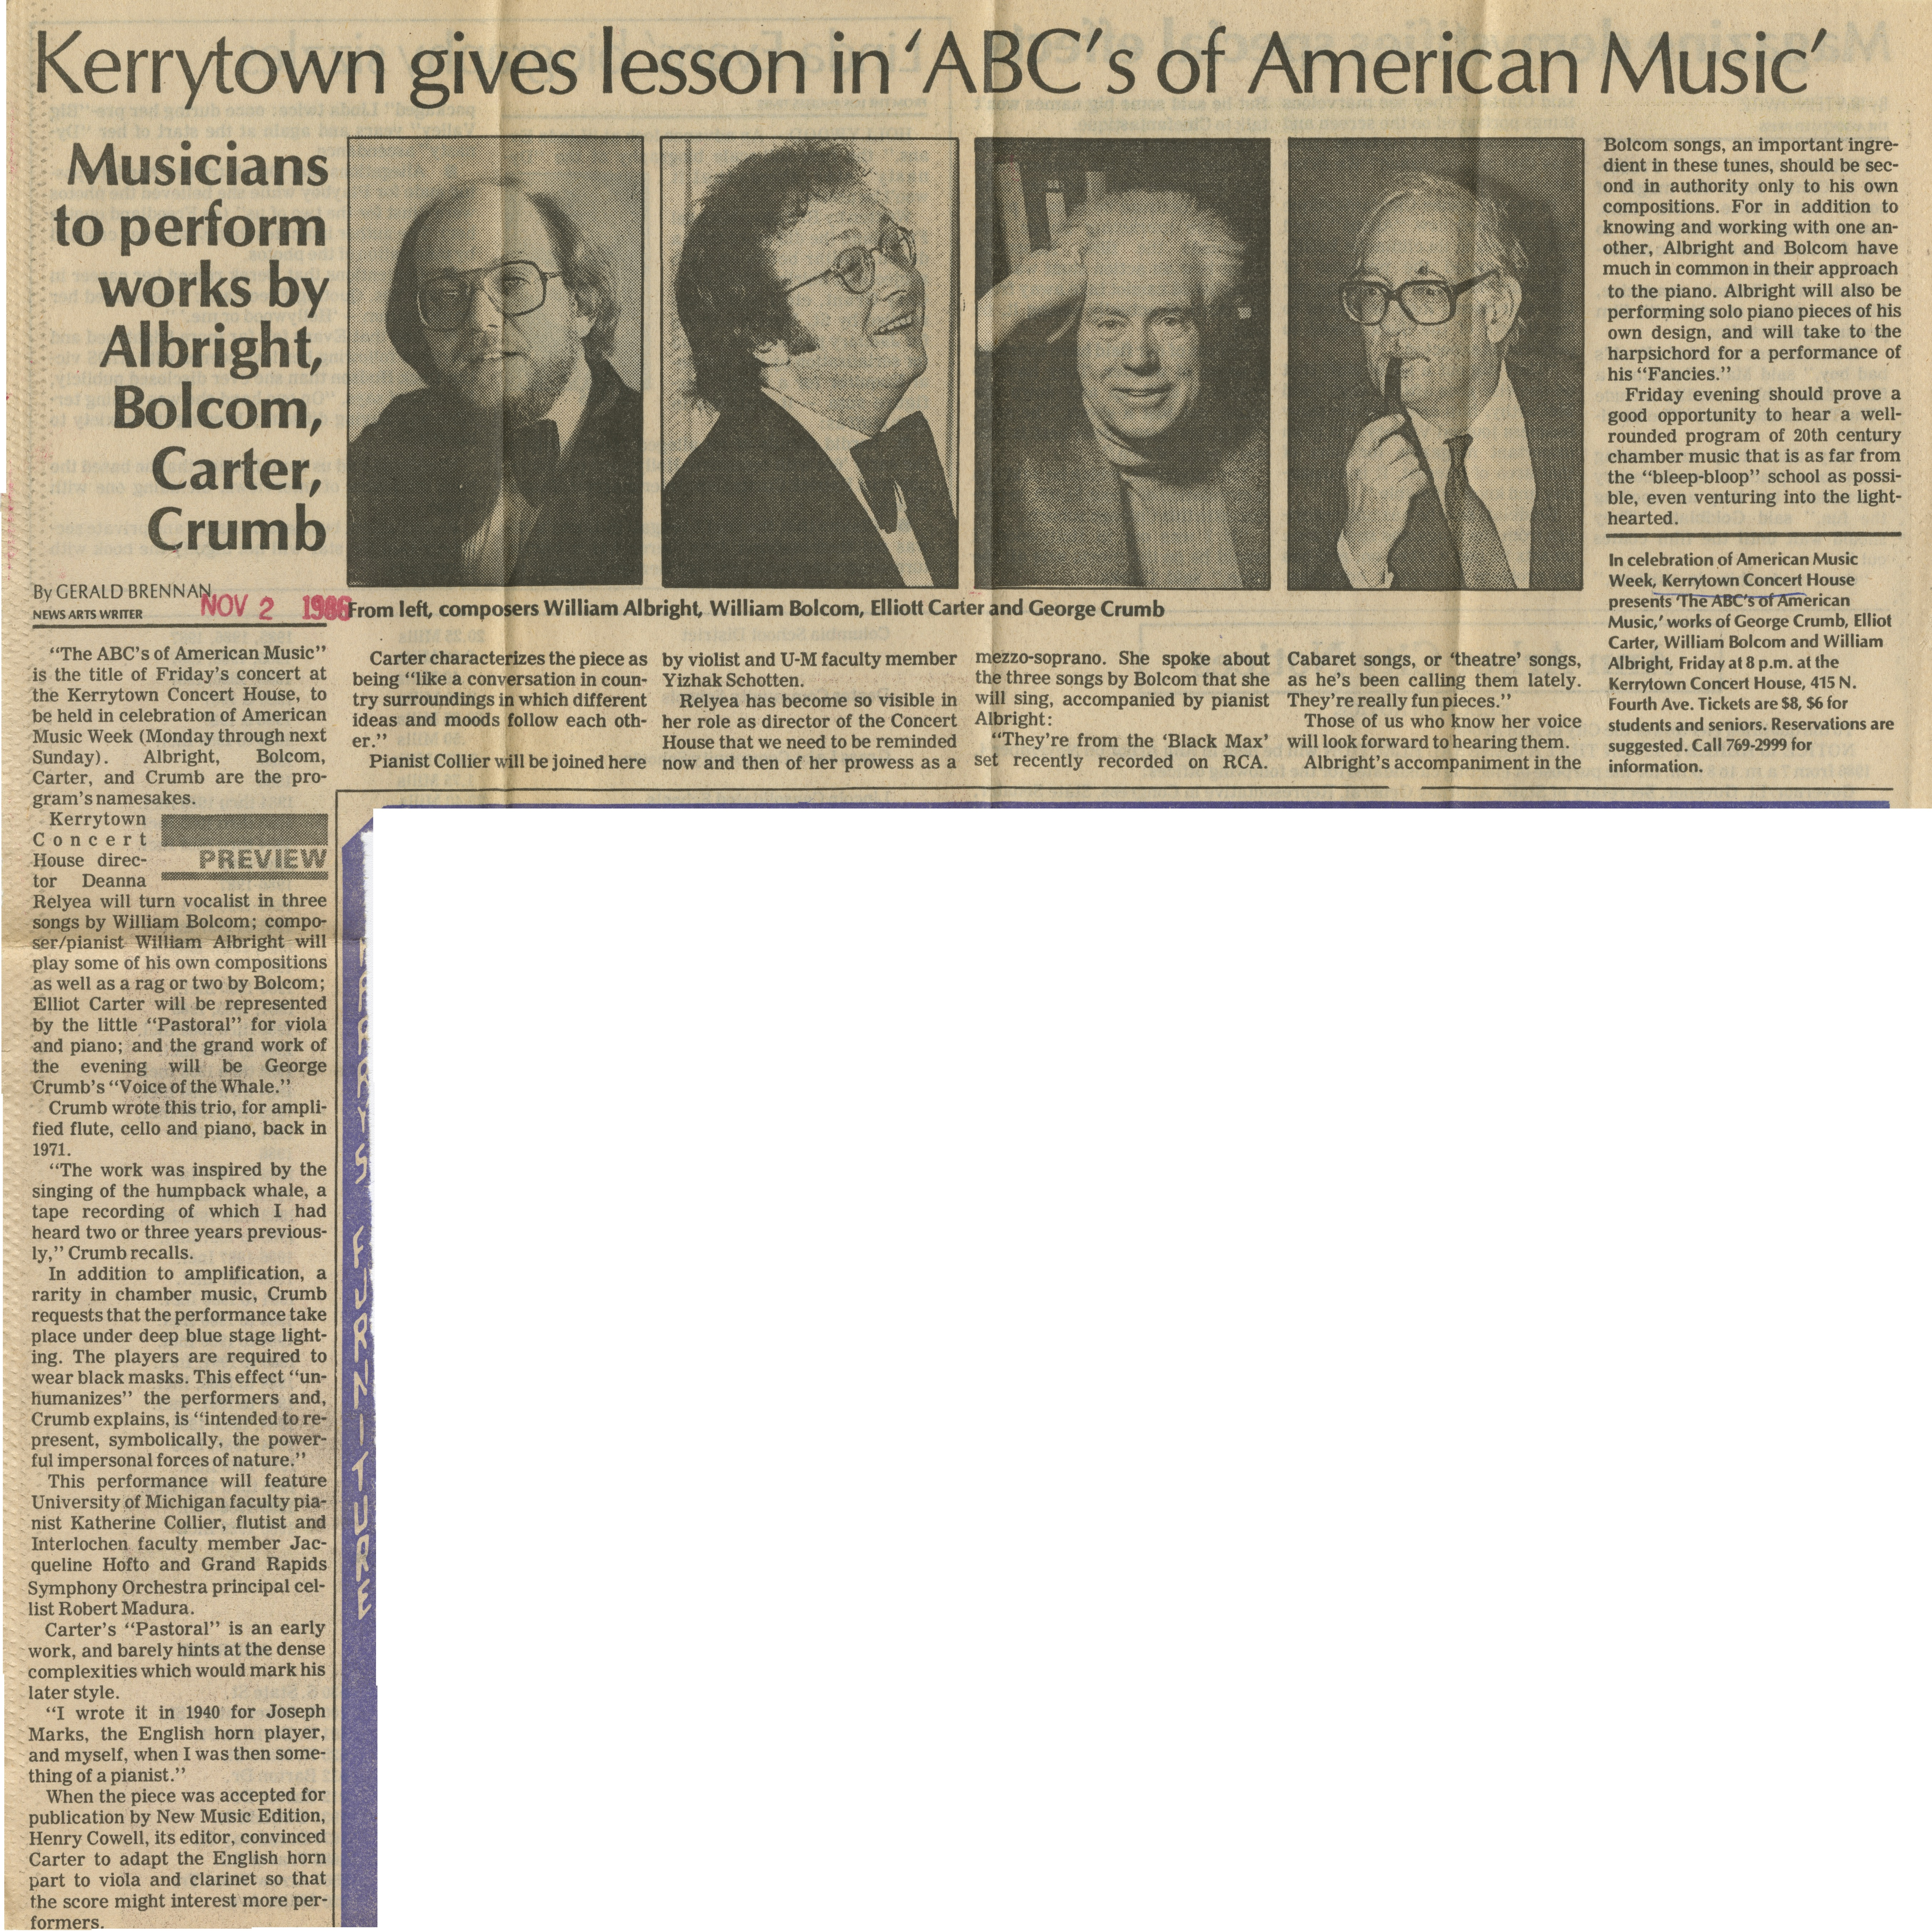 Kerrytown gives lesson in 'ABCs of American Music' image